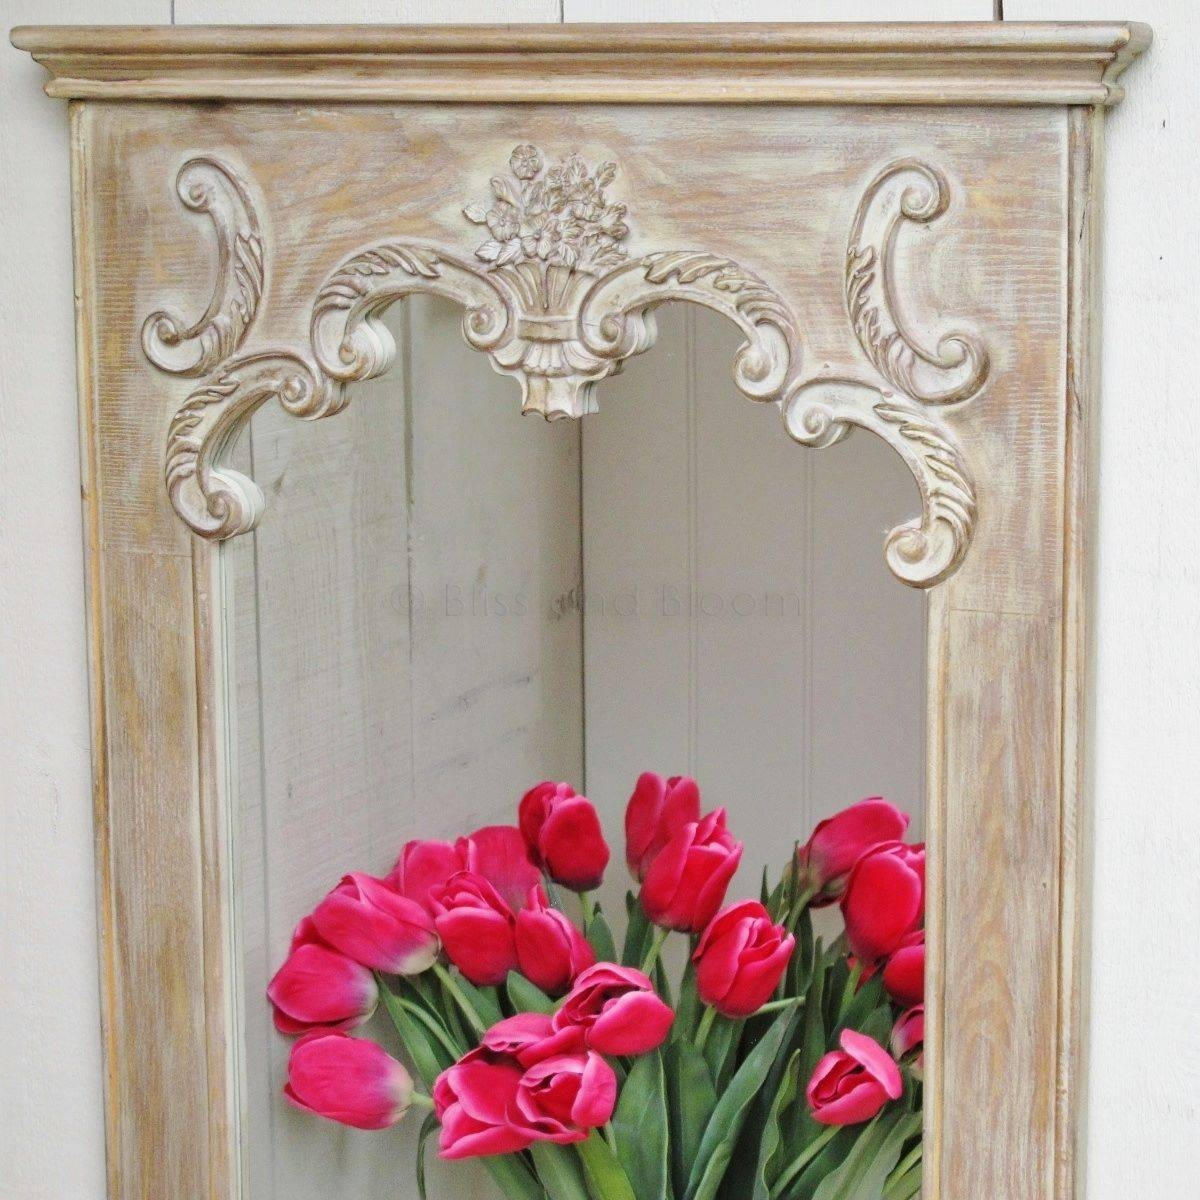 French Style Long Wall Mirror | Bliss And Bloom Ltd Intended For French Style Wall Mirrors (View 5 of 15)